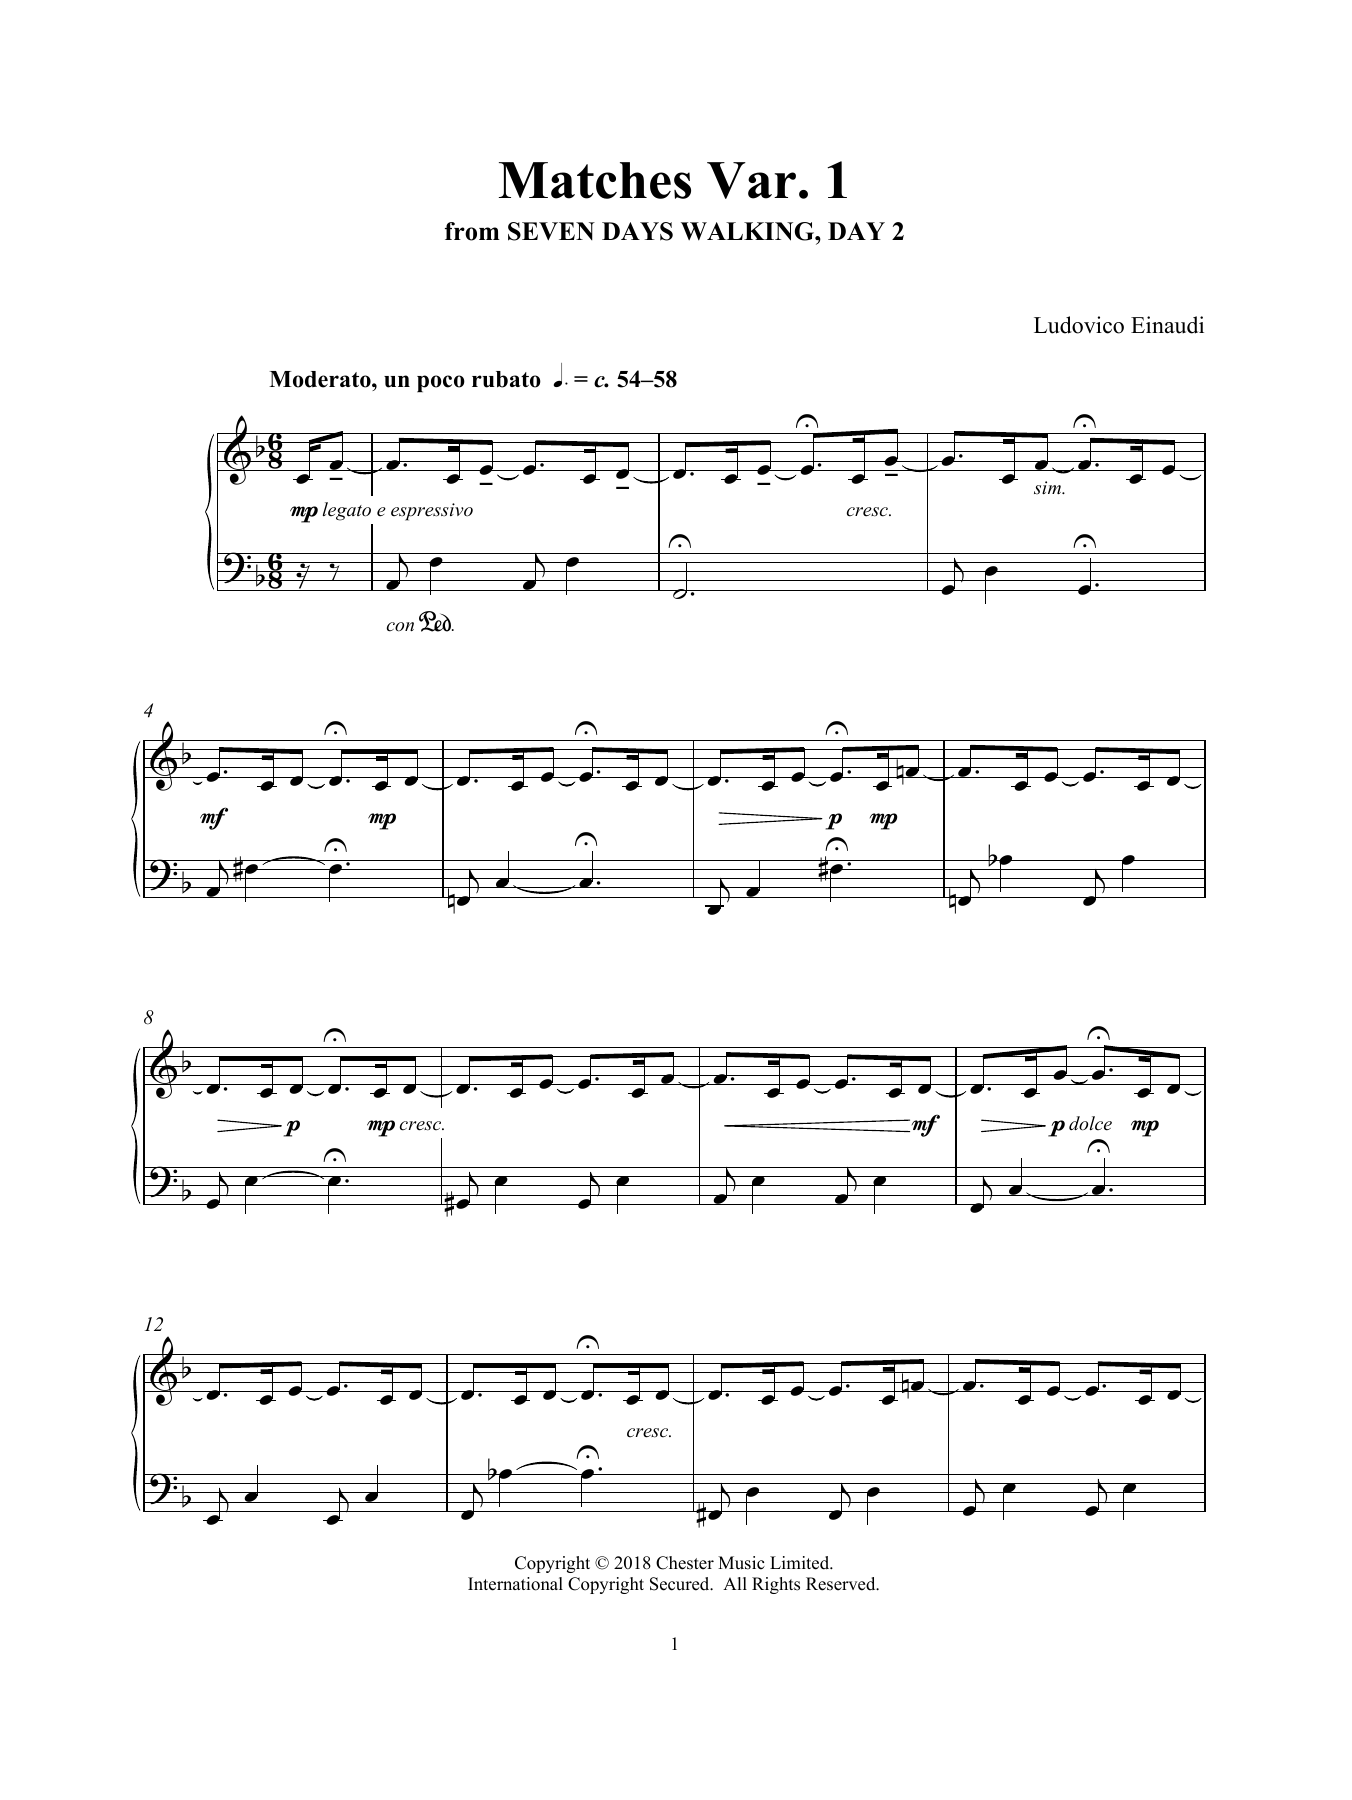 Ludovico Einaudi Matches Var. 1 (from Seven Days Walking: Day 2) sheet music notes and chords